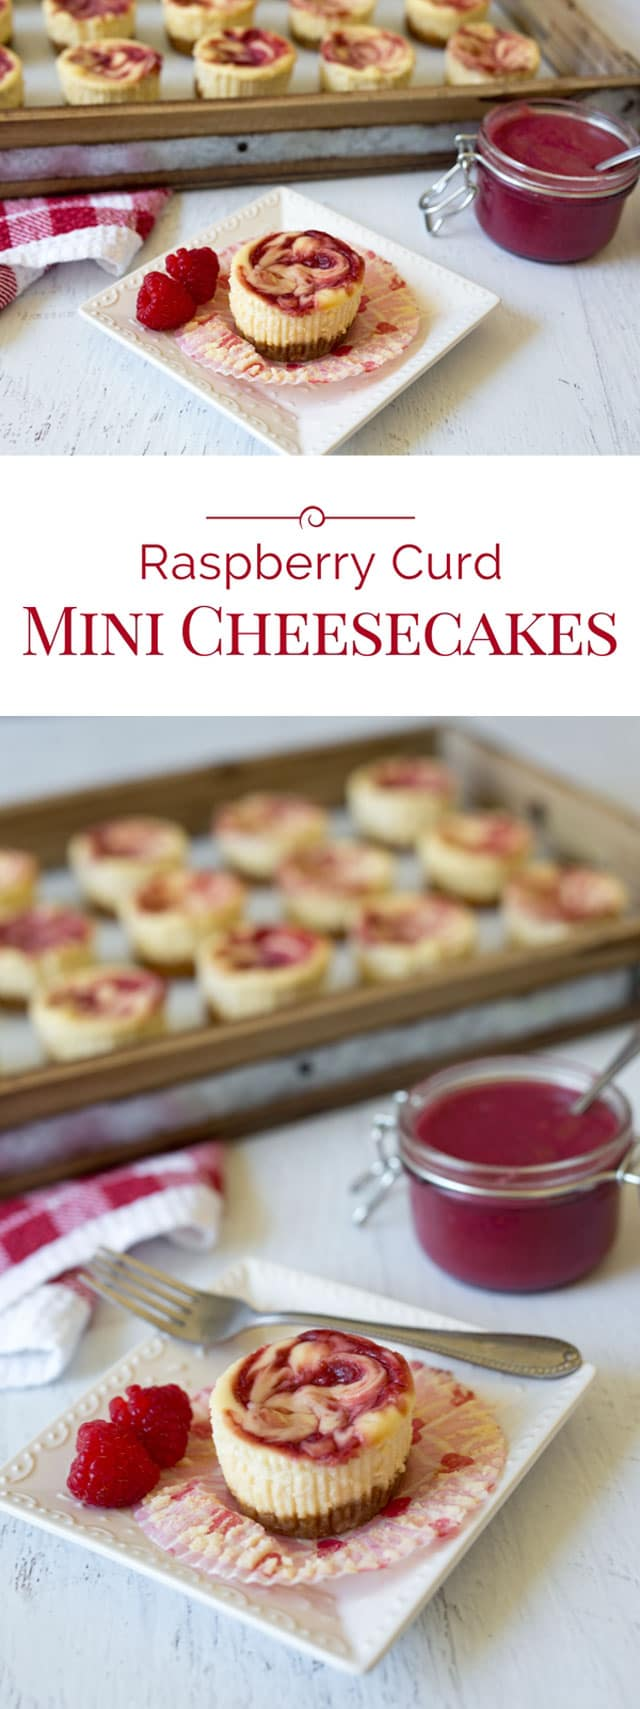 Rich, smooth, creamy cheesecakes swirled with tart raspberry curd in a fun mini size. These Raspberry Curd Mini Cheesecakes are a quick, easy-to-make stress-free dessert.